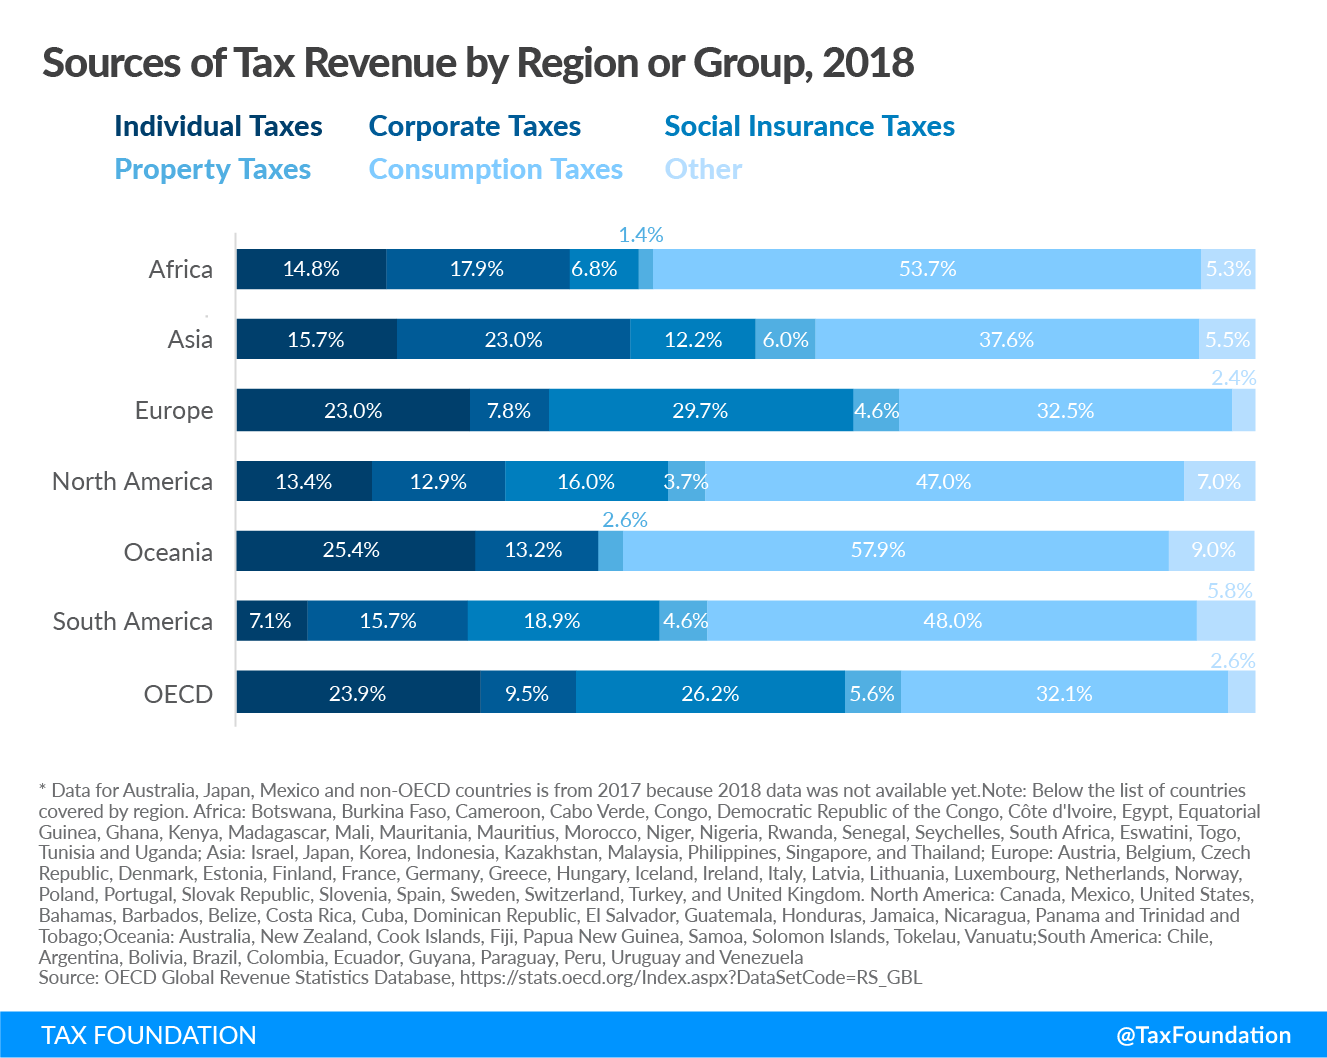 Sources of Tax Revenue by Region or Group 2018